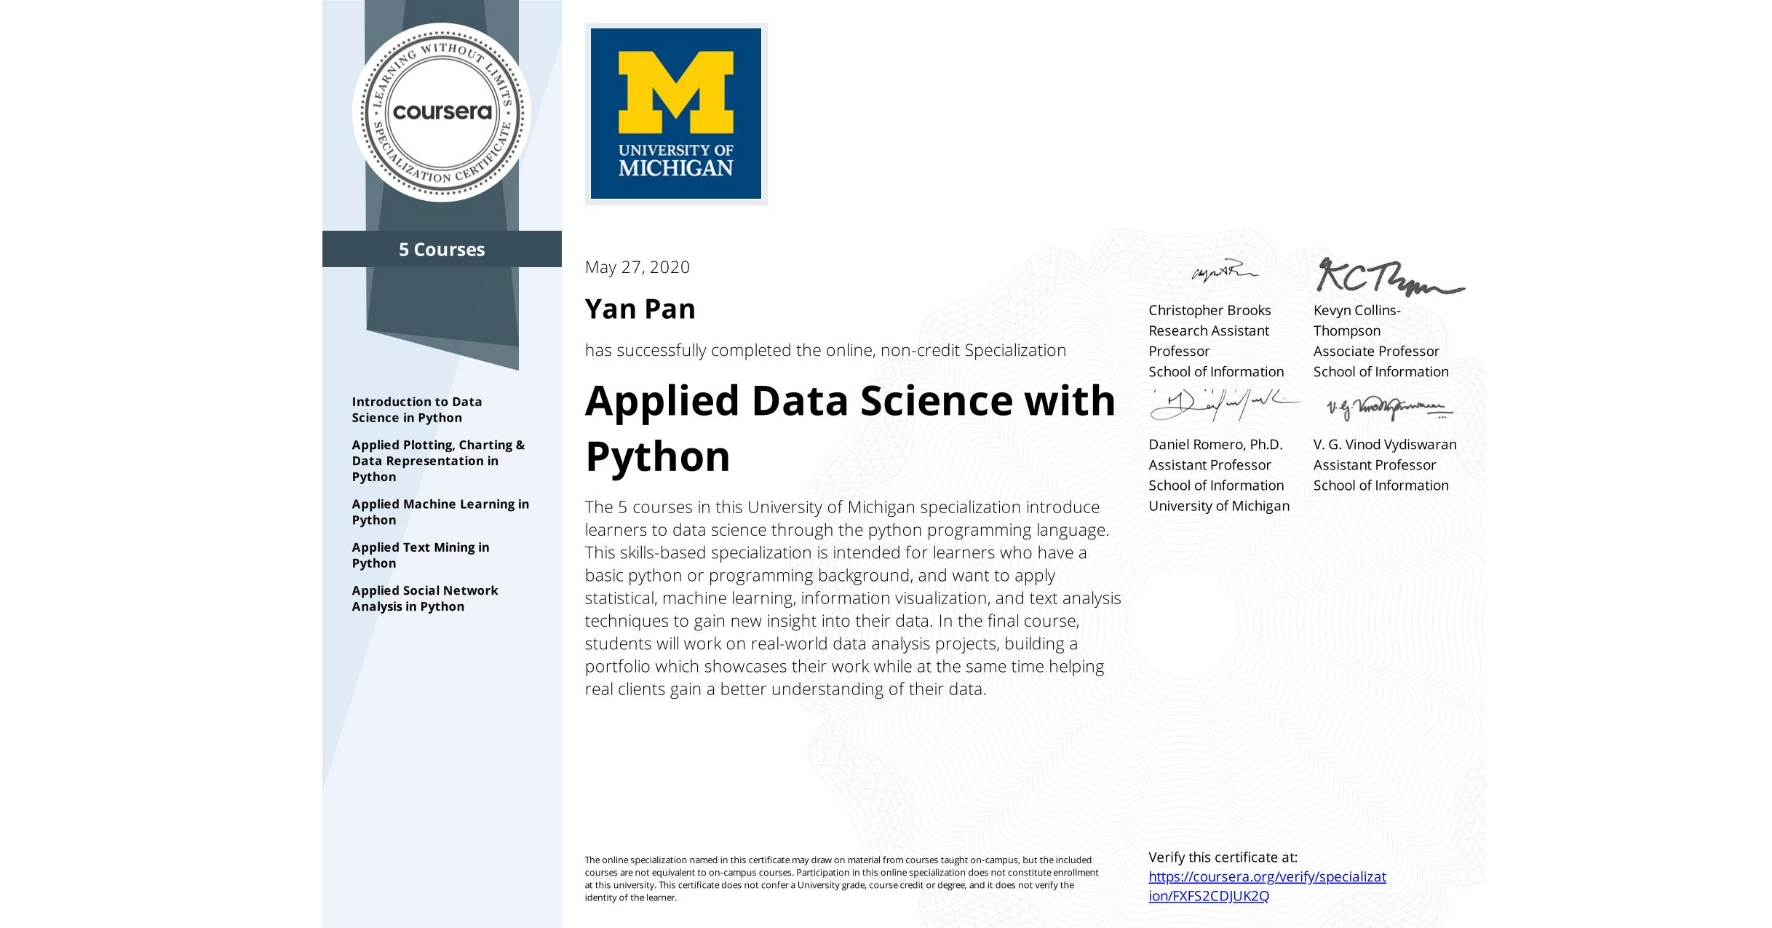 View certificate for Yan Pan, Applied Data Science with Python, offered through Coursera. The 5 courses in this University of Michigan specialization introduce learners to data science through the python programming language. This skills-based specialization is intended for learners who have a basic python or programming background, and want to apply statistical, machine learning, information visualization, and text analysis techniques to gain new insight into their data. In the final course, students will work on real-world data analysis projects, building a portfolio which showcases their work while at the same time helping real clients gain a better understanding of their data.